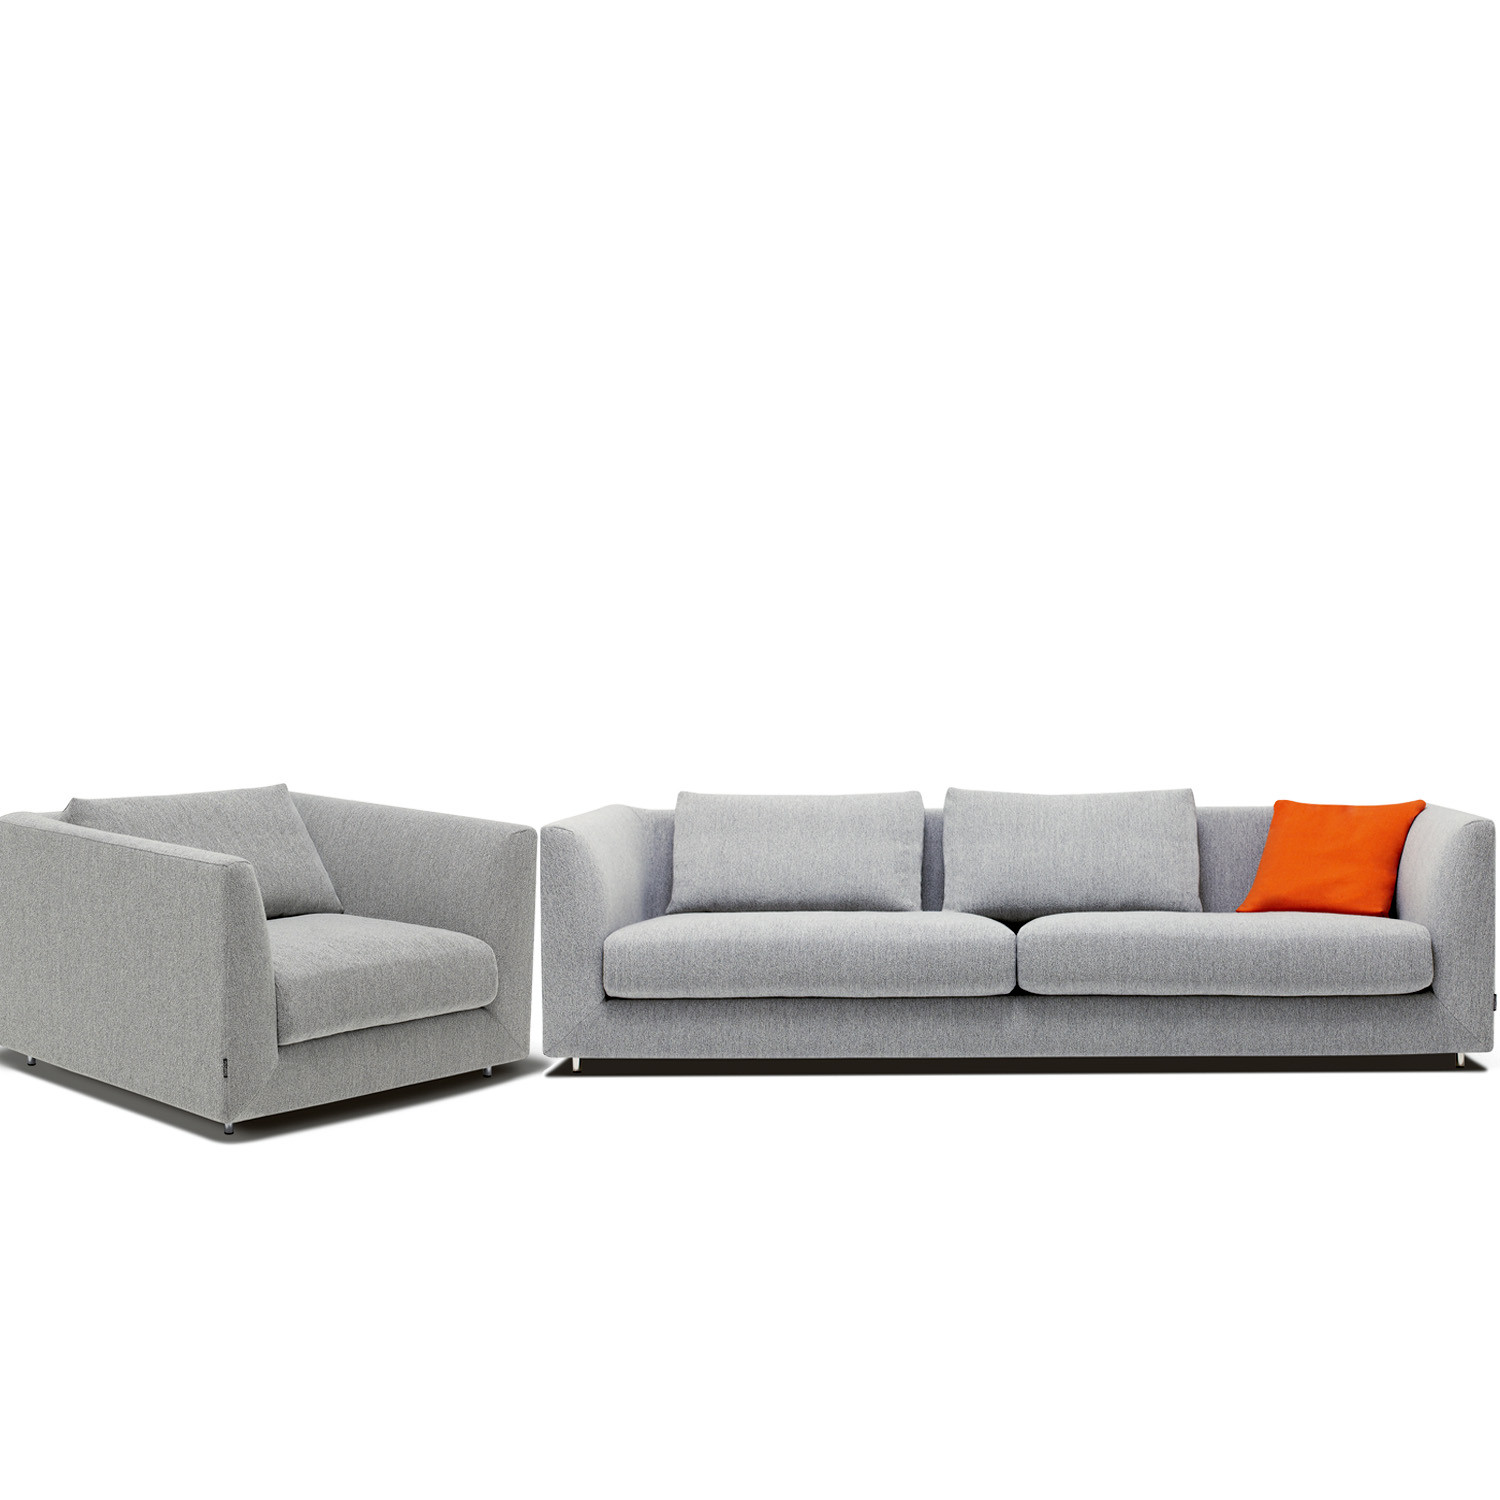 Nemo Sofa and Armchair